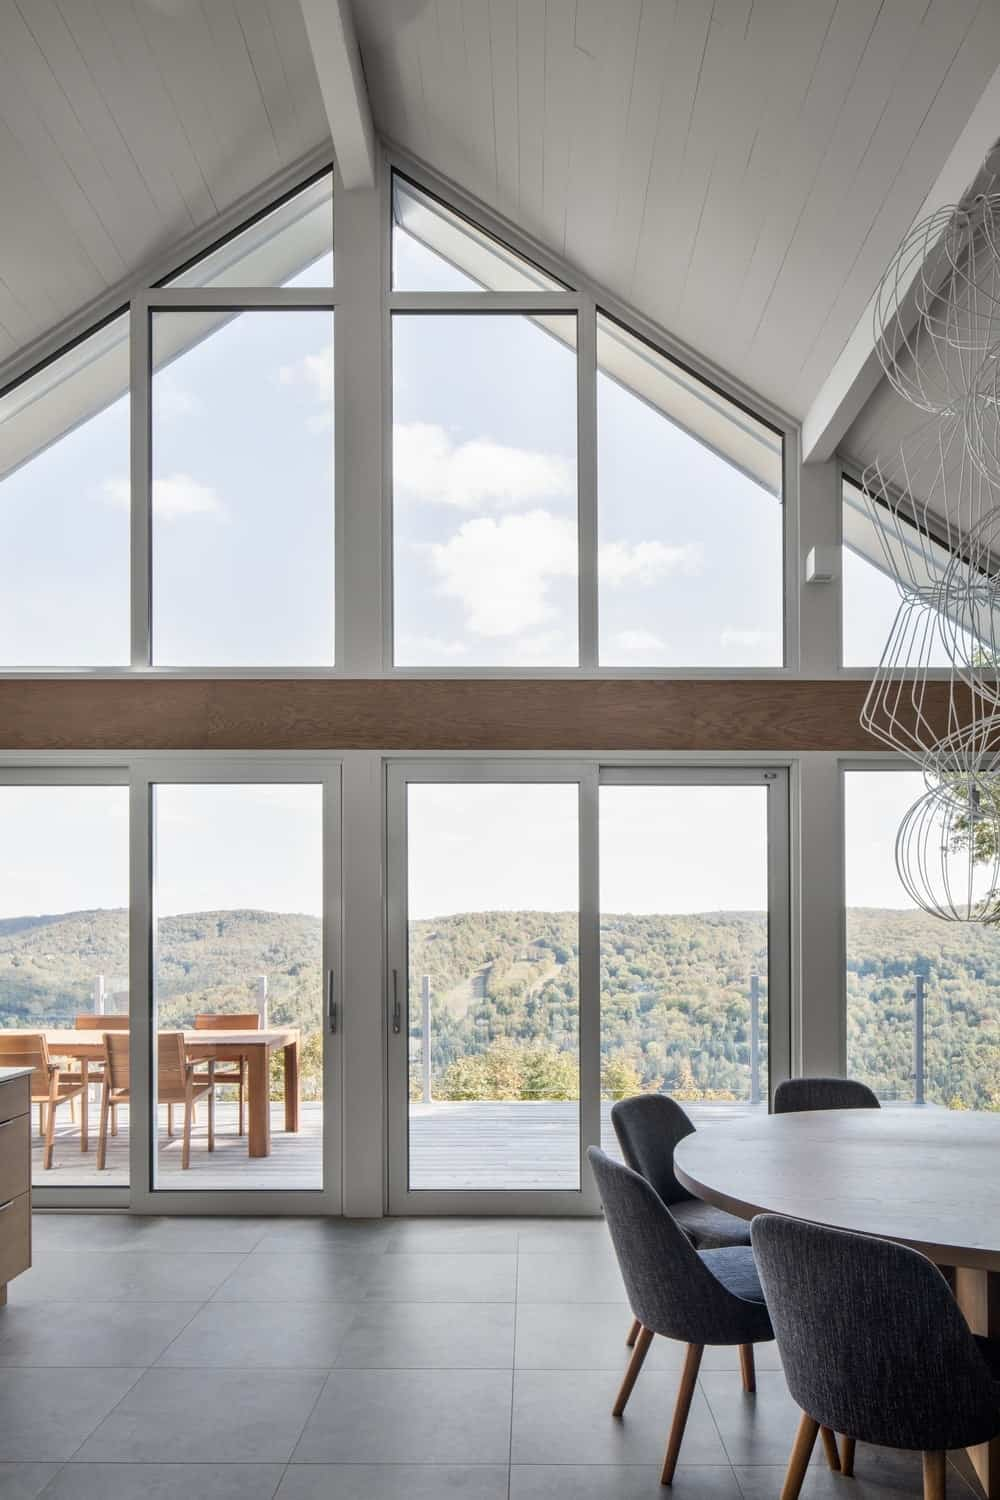 A look at the home's glass windows, walls, and doors leading to the deck patio outside. Photo credit: Adrien Williams